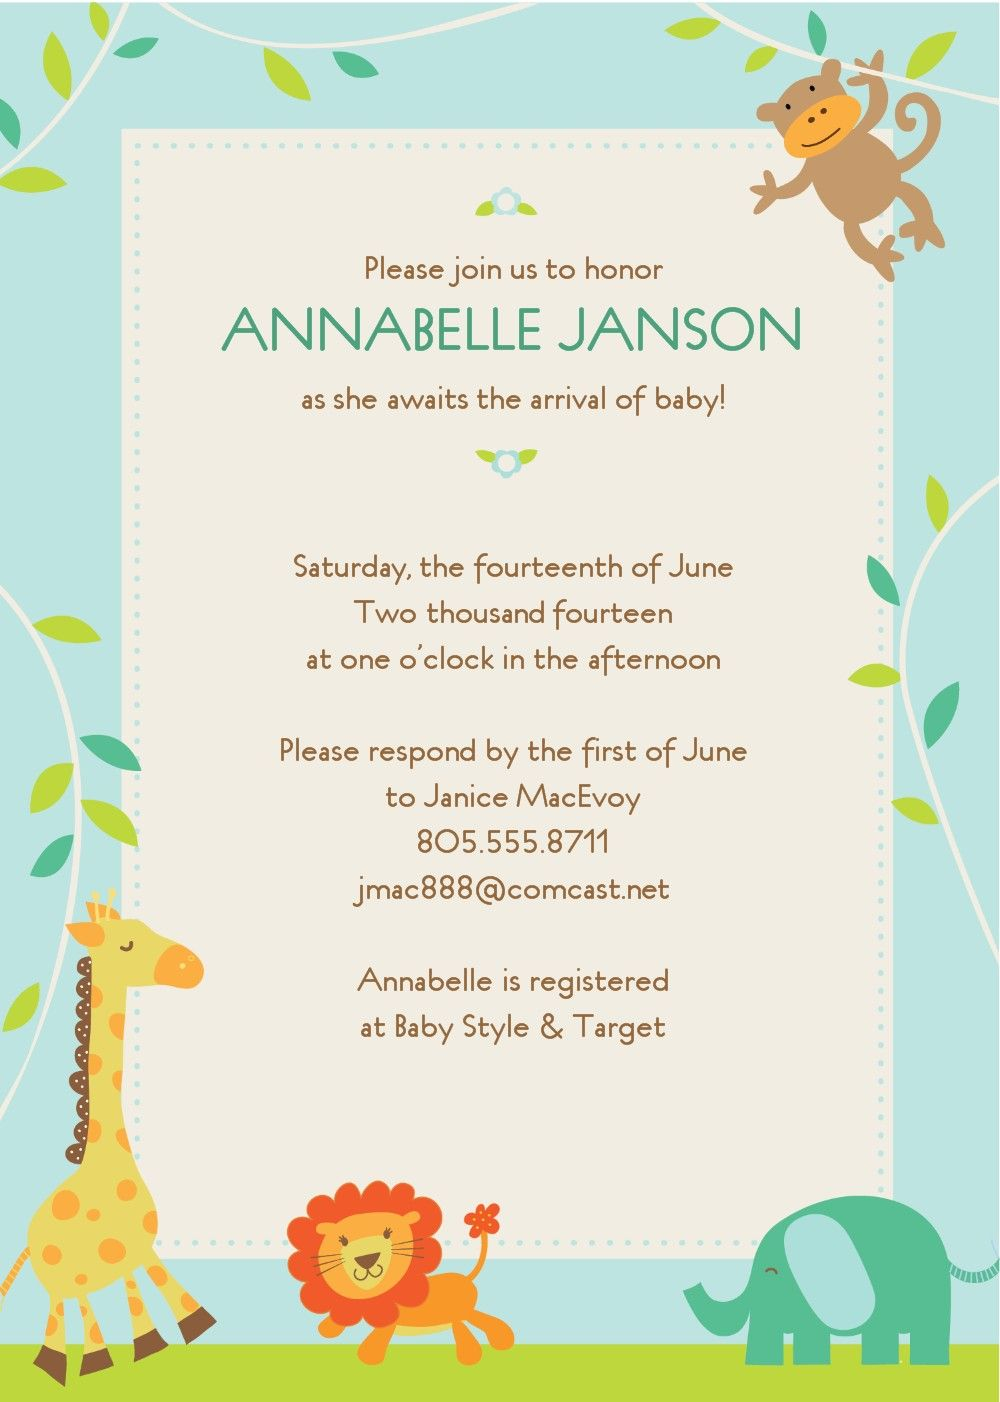 Free baby shower invitations templates template cebacanada free baby shower invitations templates template cebacanada ofhypdvp filmwisefo Gallery